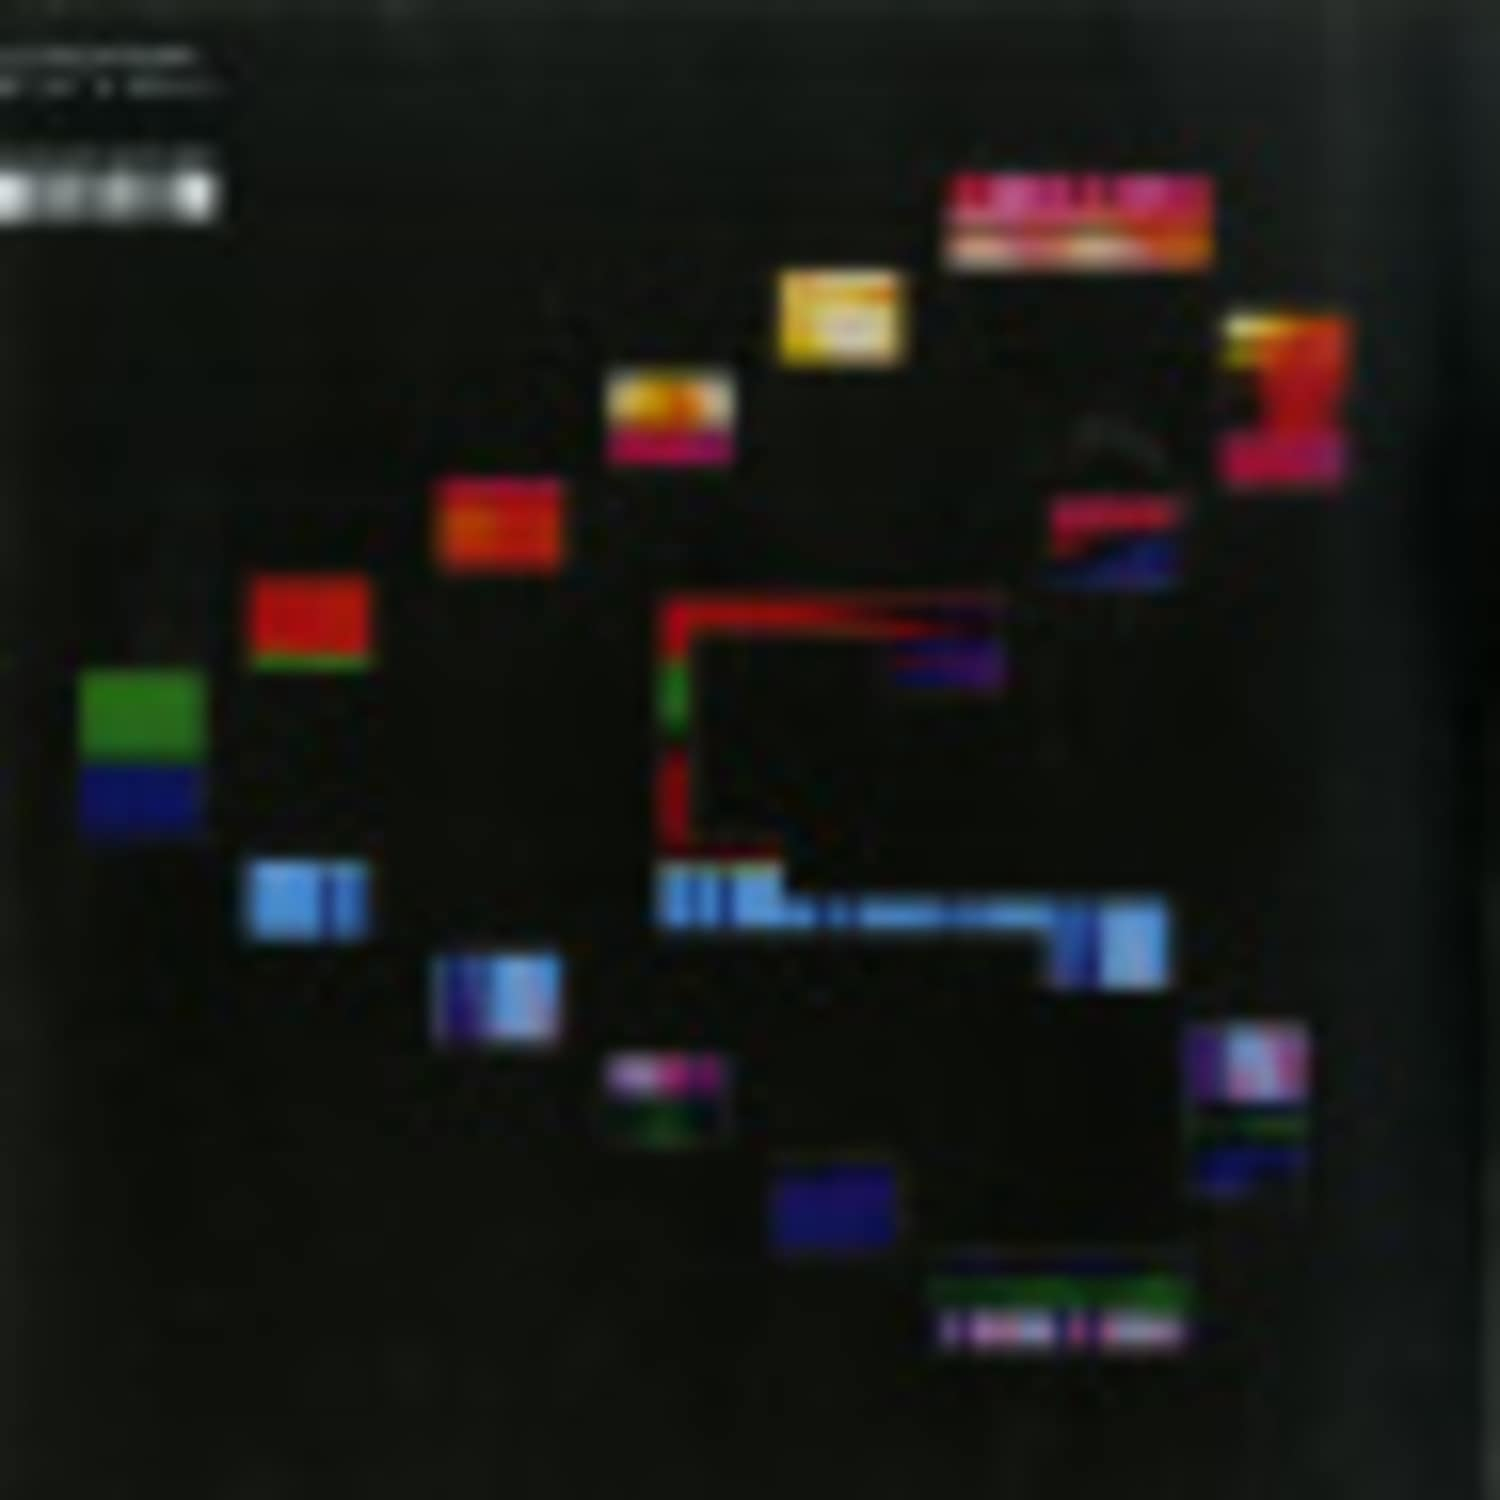 Squarepusher - BE UP A HELLO